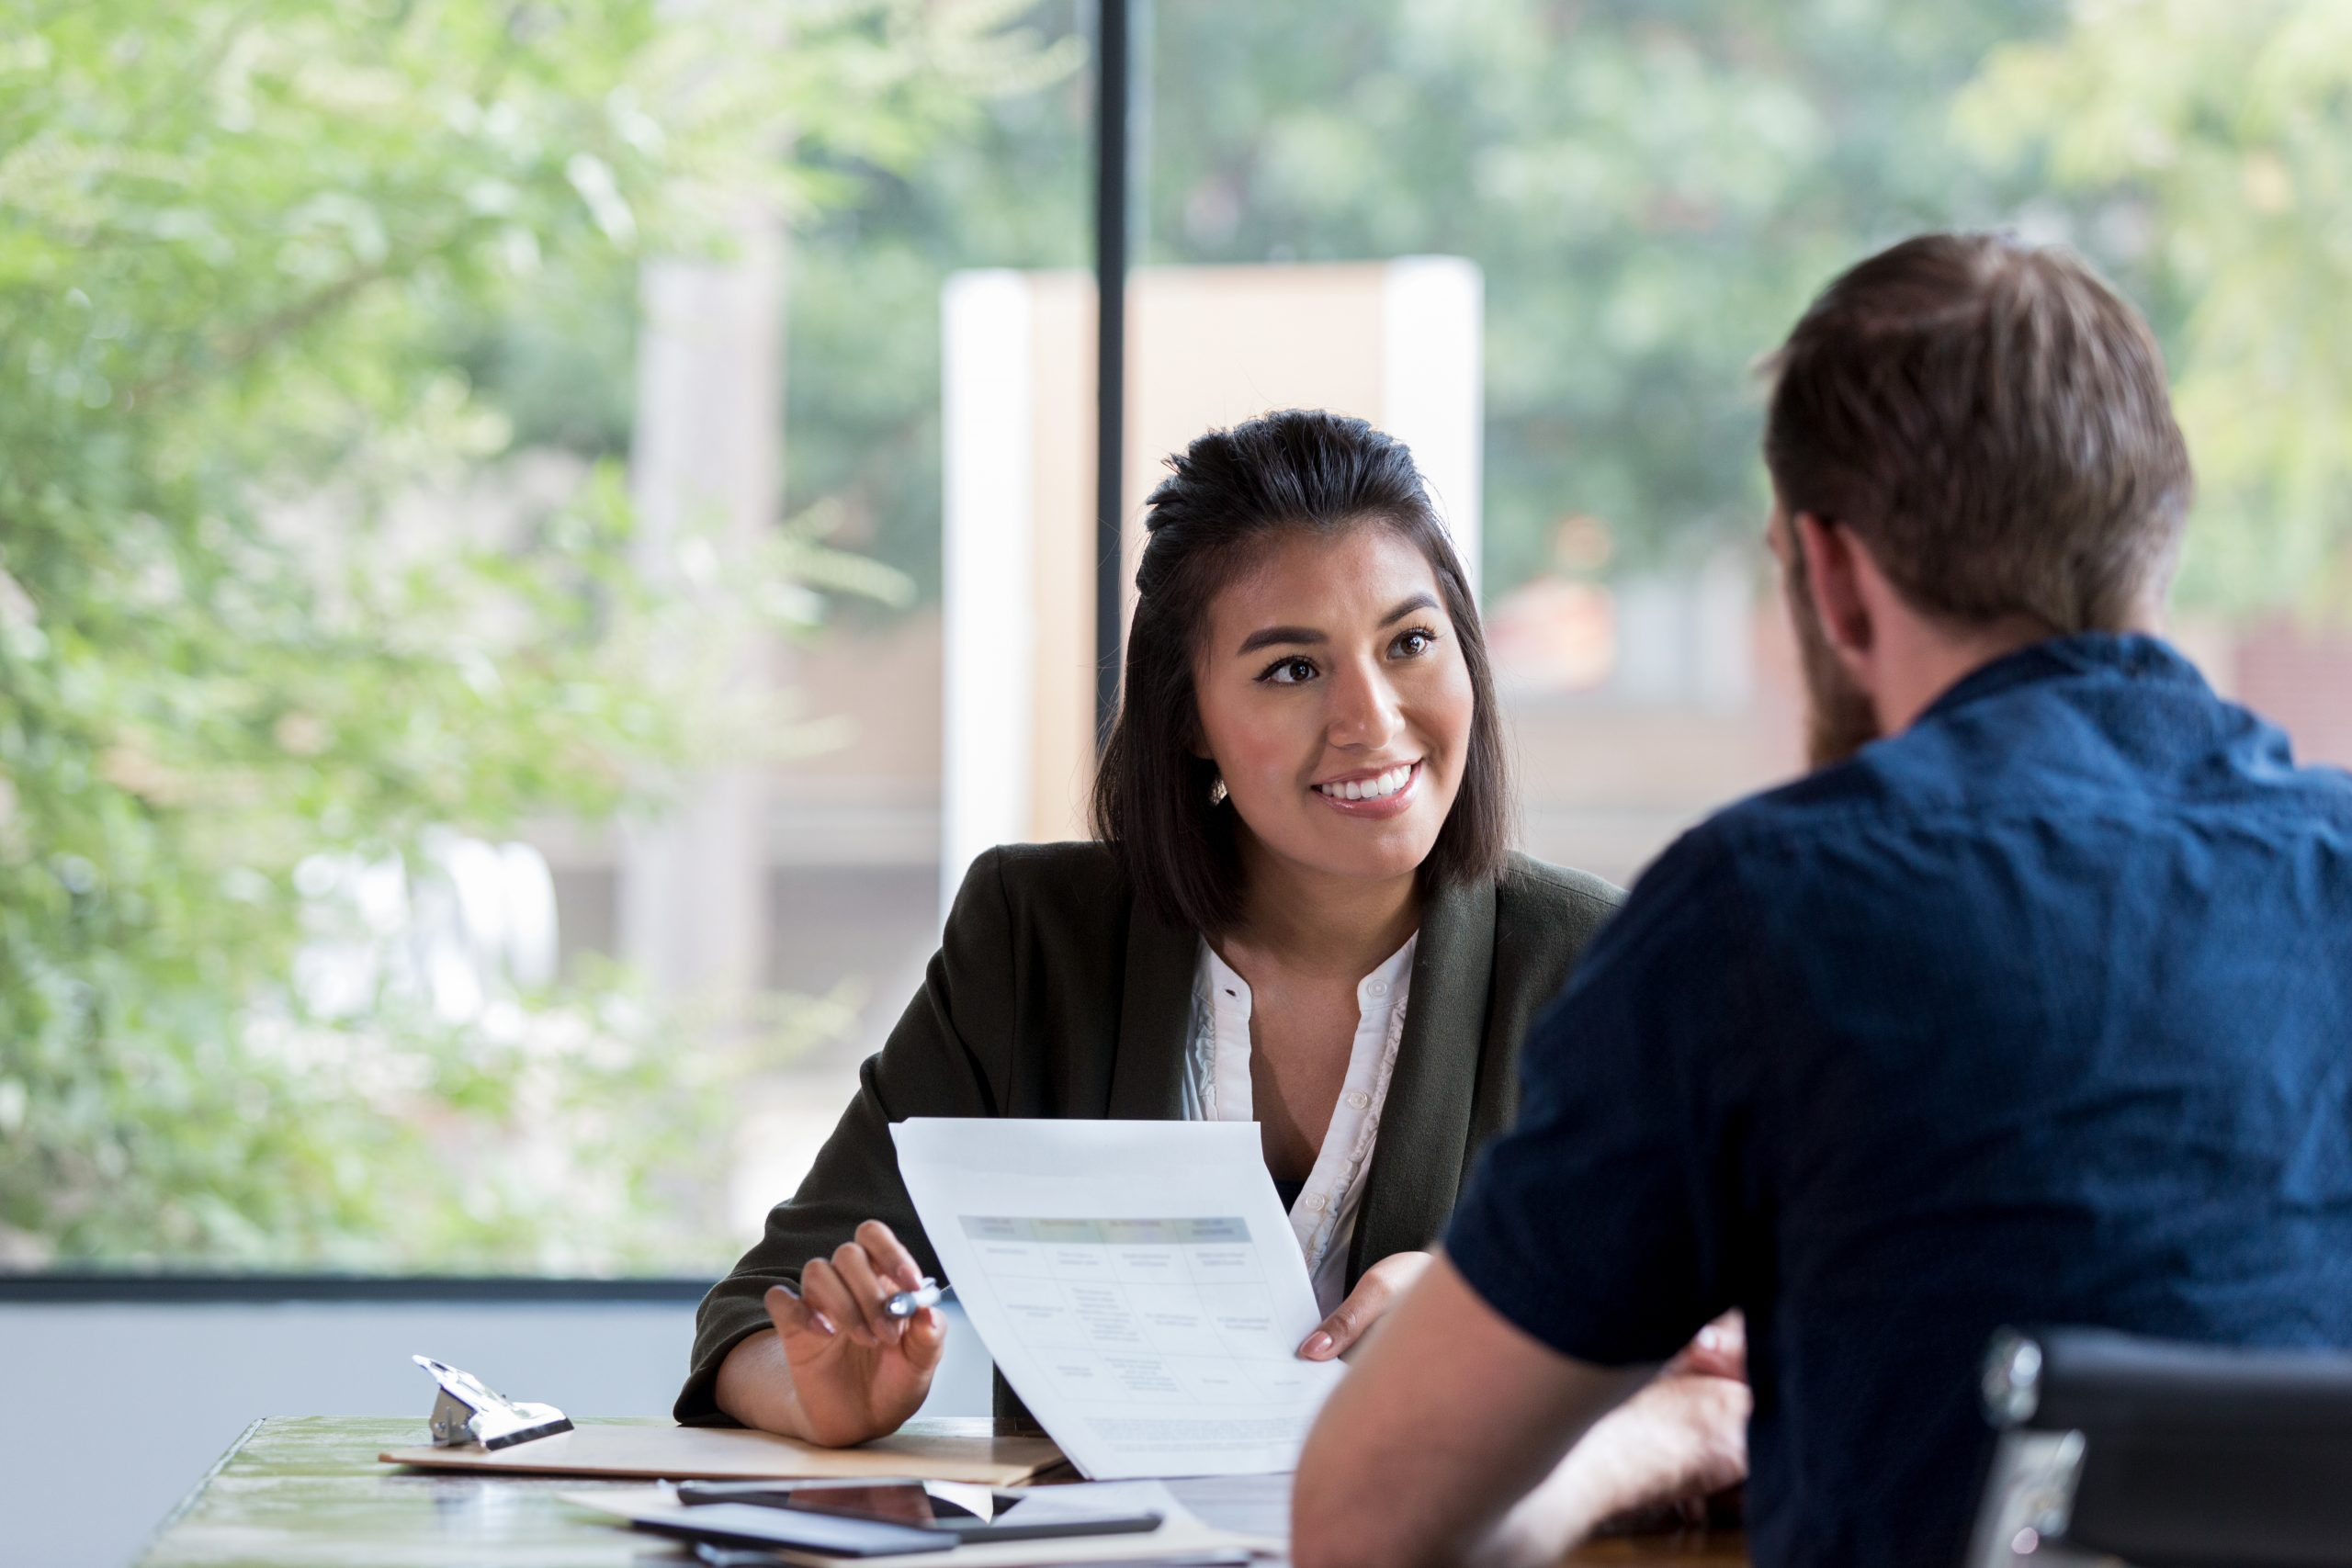 Hispanic businesswoman smiles while showing a document to a male associate.